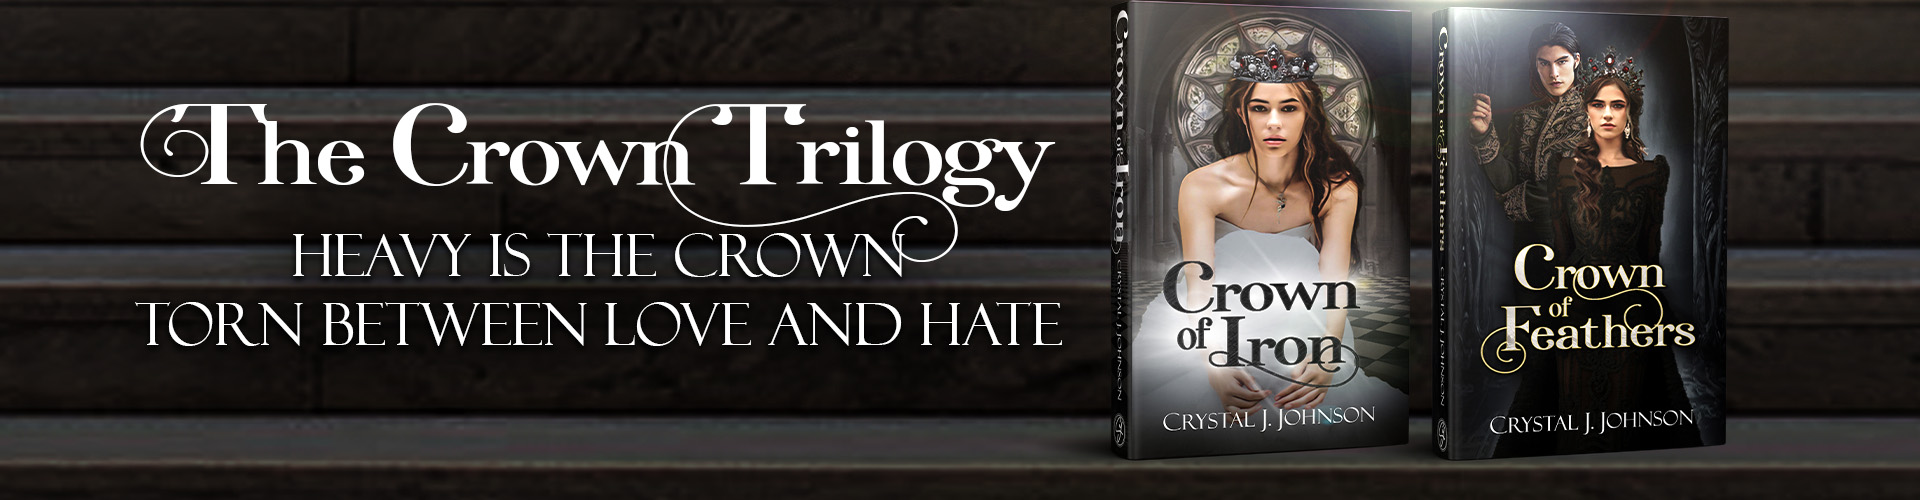 The Crown Trilogy by Crystal J. Johnson